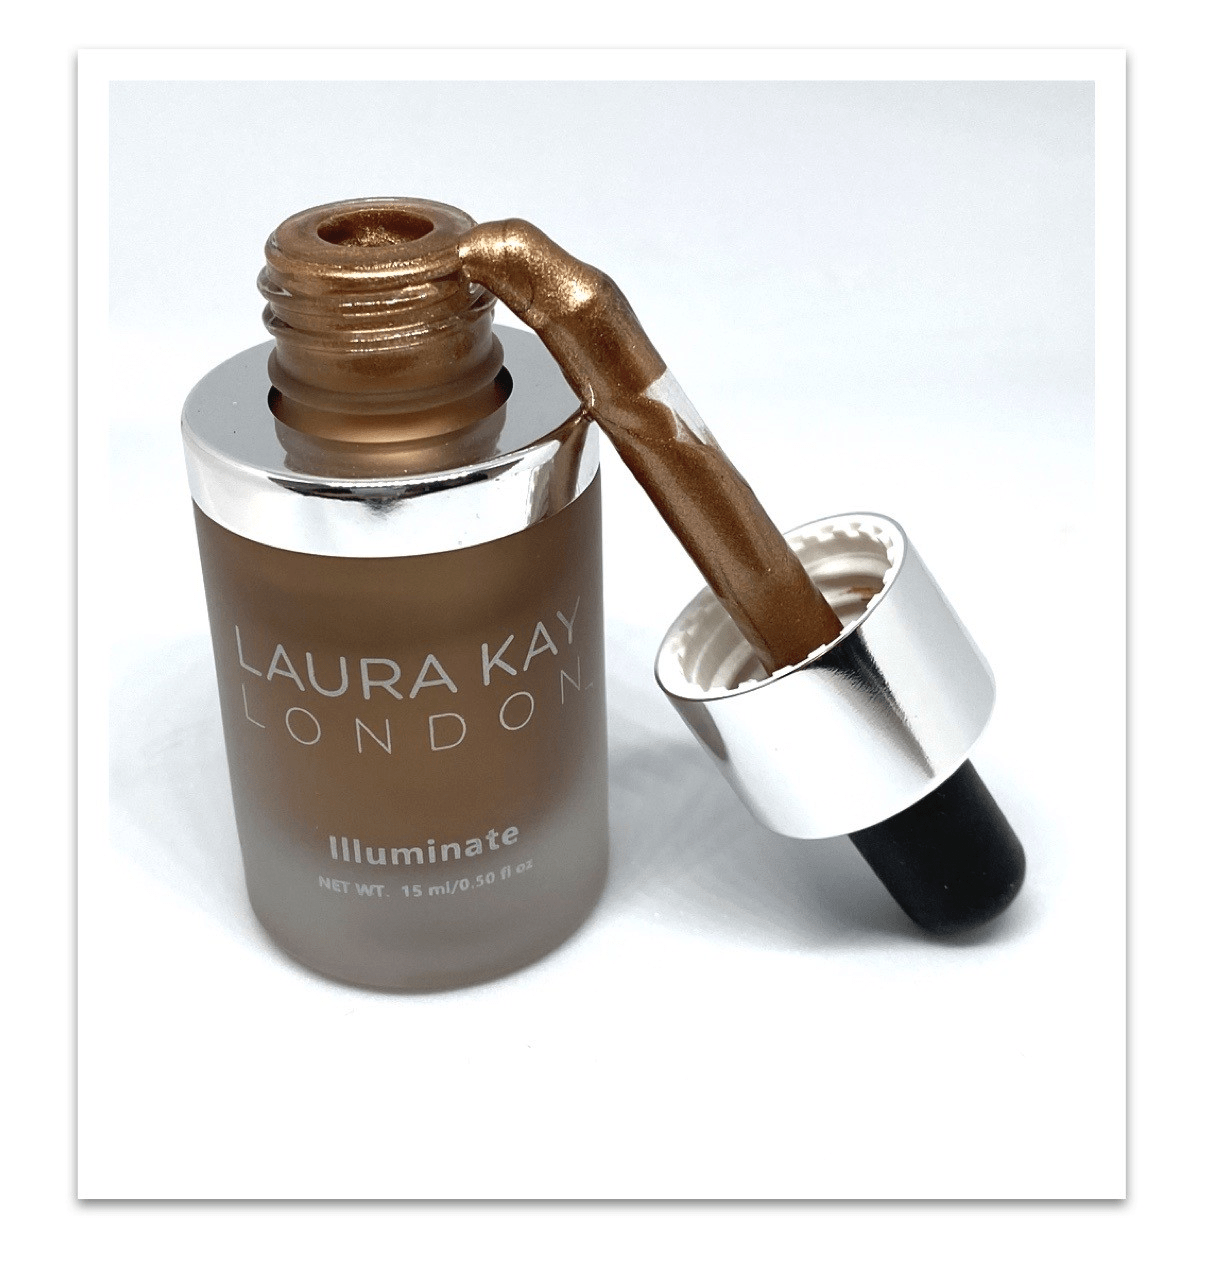 Laura Kay London Illuminate Bronze